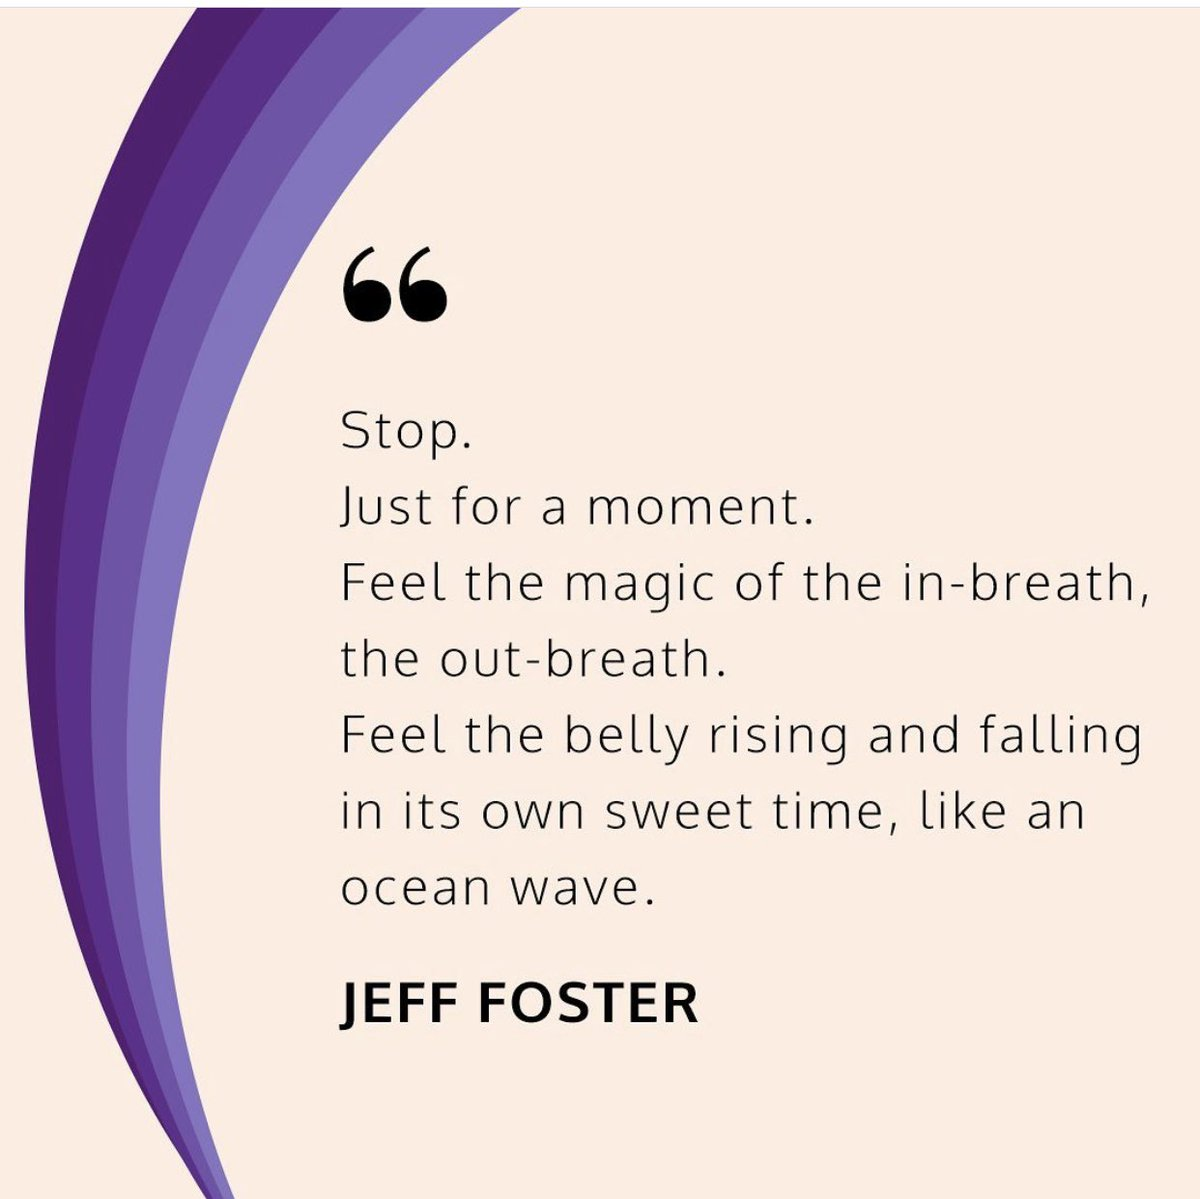 Stop for a moment feel the magic of the in breath and the out breath feel the belly rising and falling in its own sweet time like an ocean wave 💙 #Jefffoster #Grateful #gratitude #Breathe #mindfulness